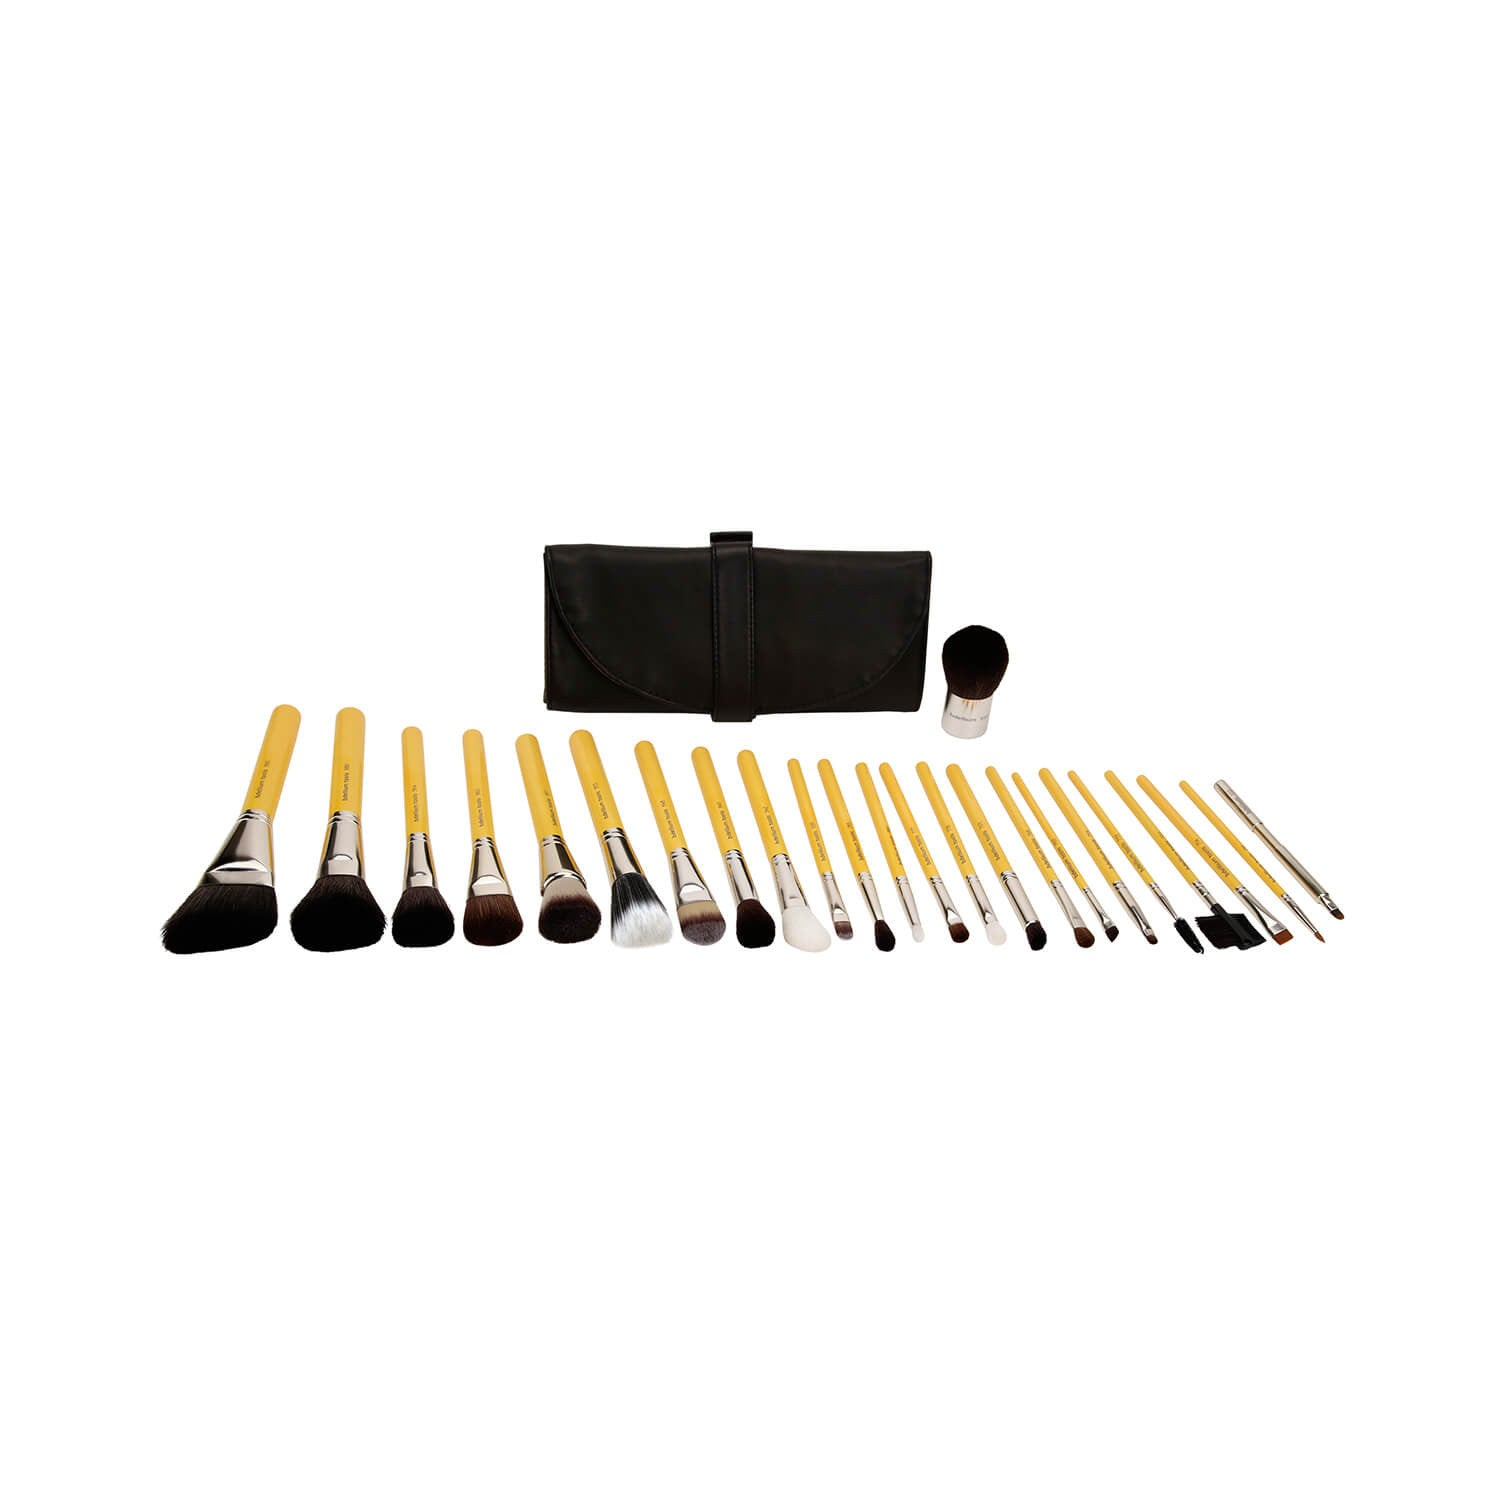 BDellium Tools Studio Luxury 24pc. Brush Set with Roll-up Pouch